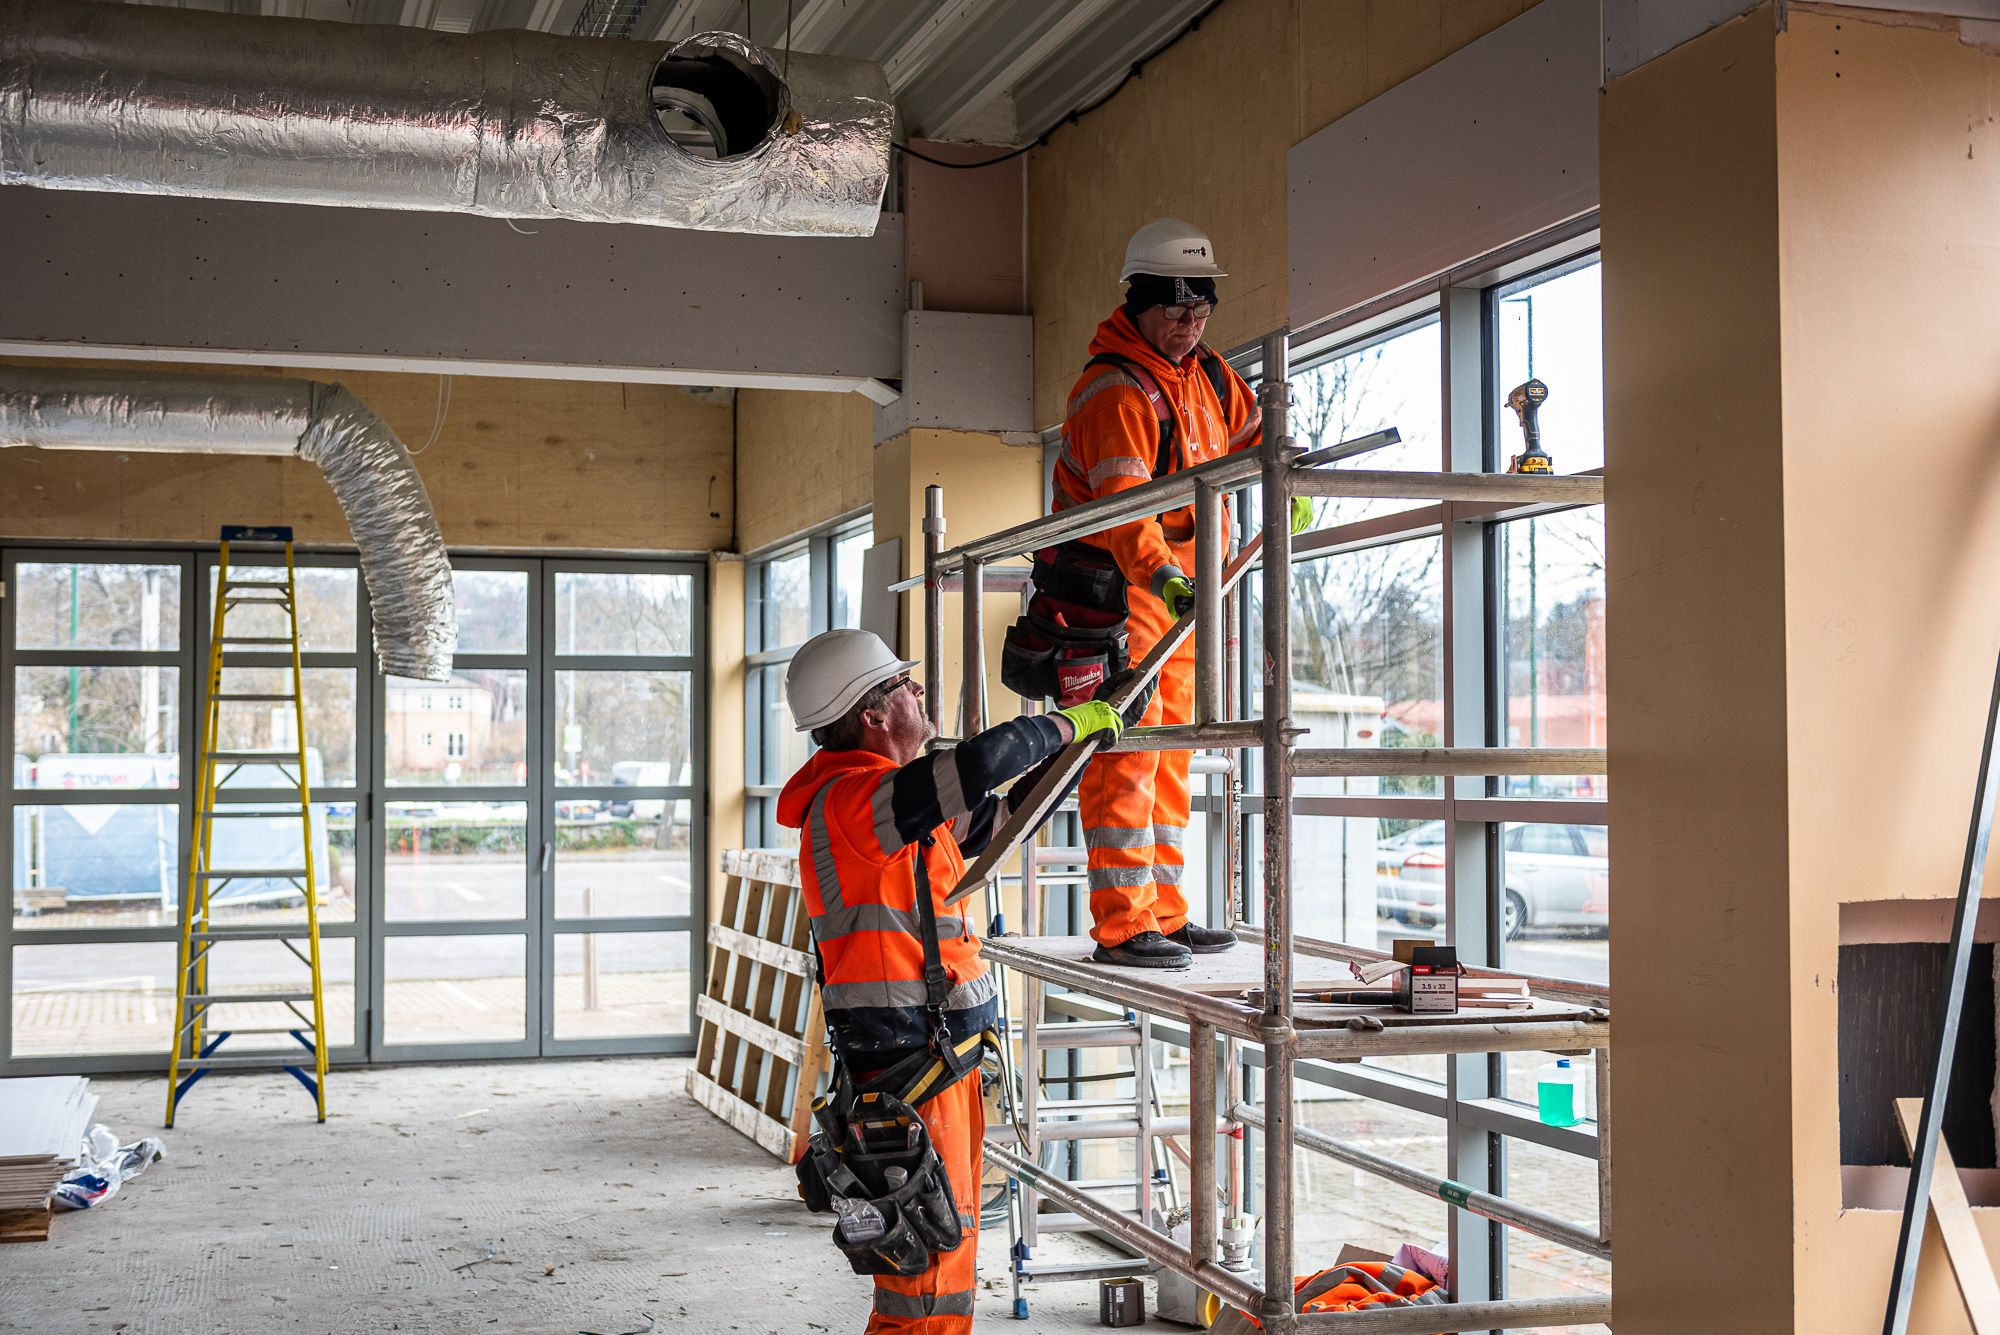 MENTAL HEALTH AND SAFETY: HOW CAN THE CONSTRUCTION INDUSTRY DO BETTER TO IMPROVE ALL KINDS OF WELLBEING?